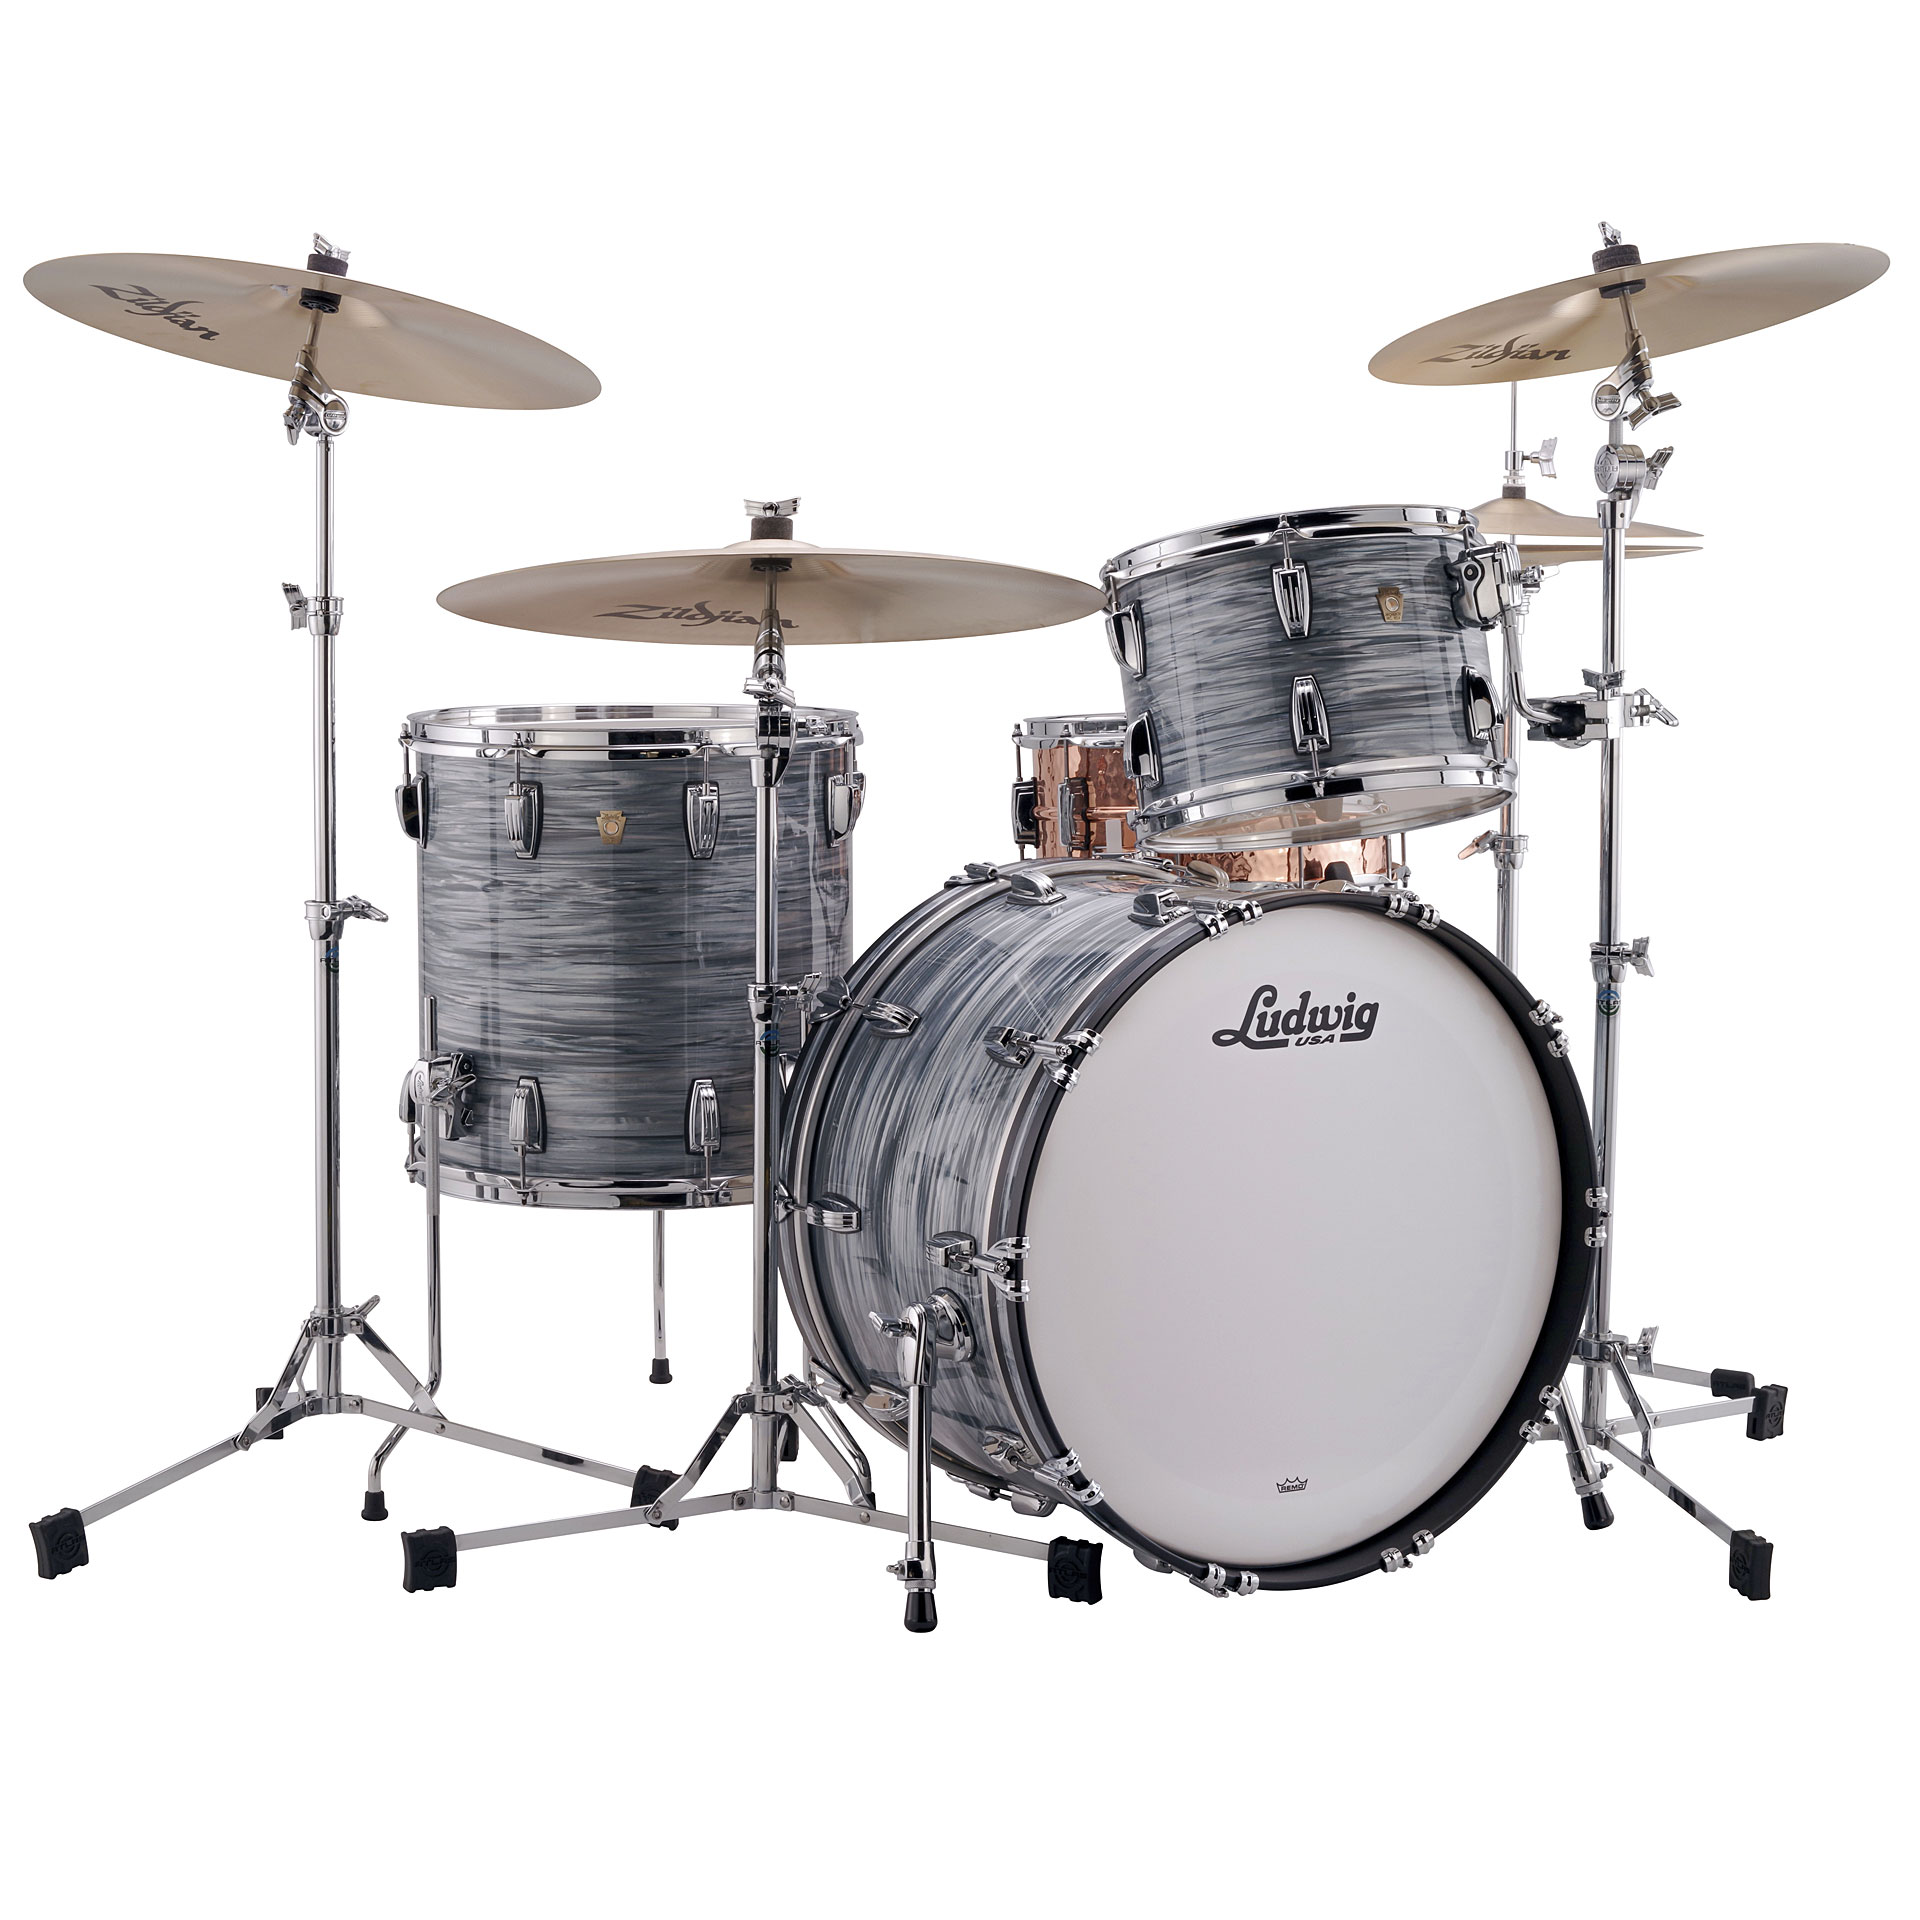 Ludwig Classic Maple Fab Four Vintage Blue Oyster « Drum Kit1920 x 1920 jpeg 341kB